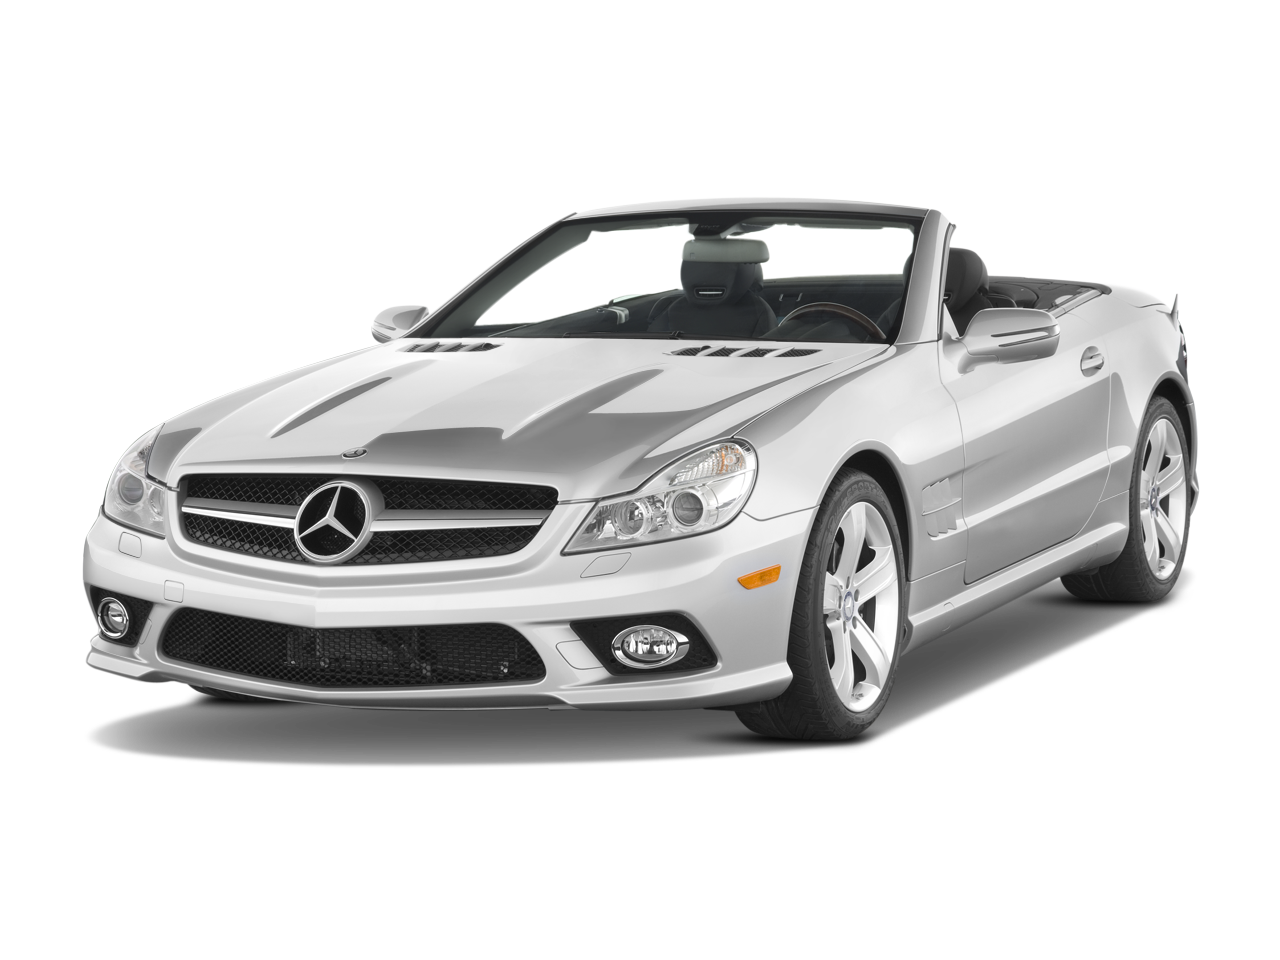 2009 mercedes benz sl class latest news reivews and auto show coverage automobile magazine. Black Bedroom Furniture Sets. Home Design Ideas